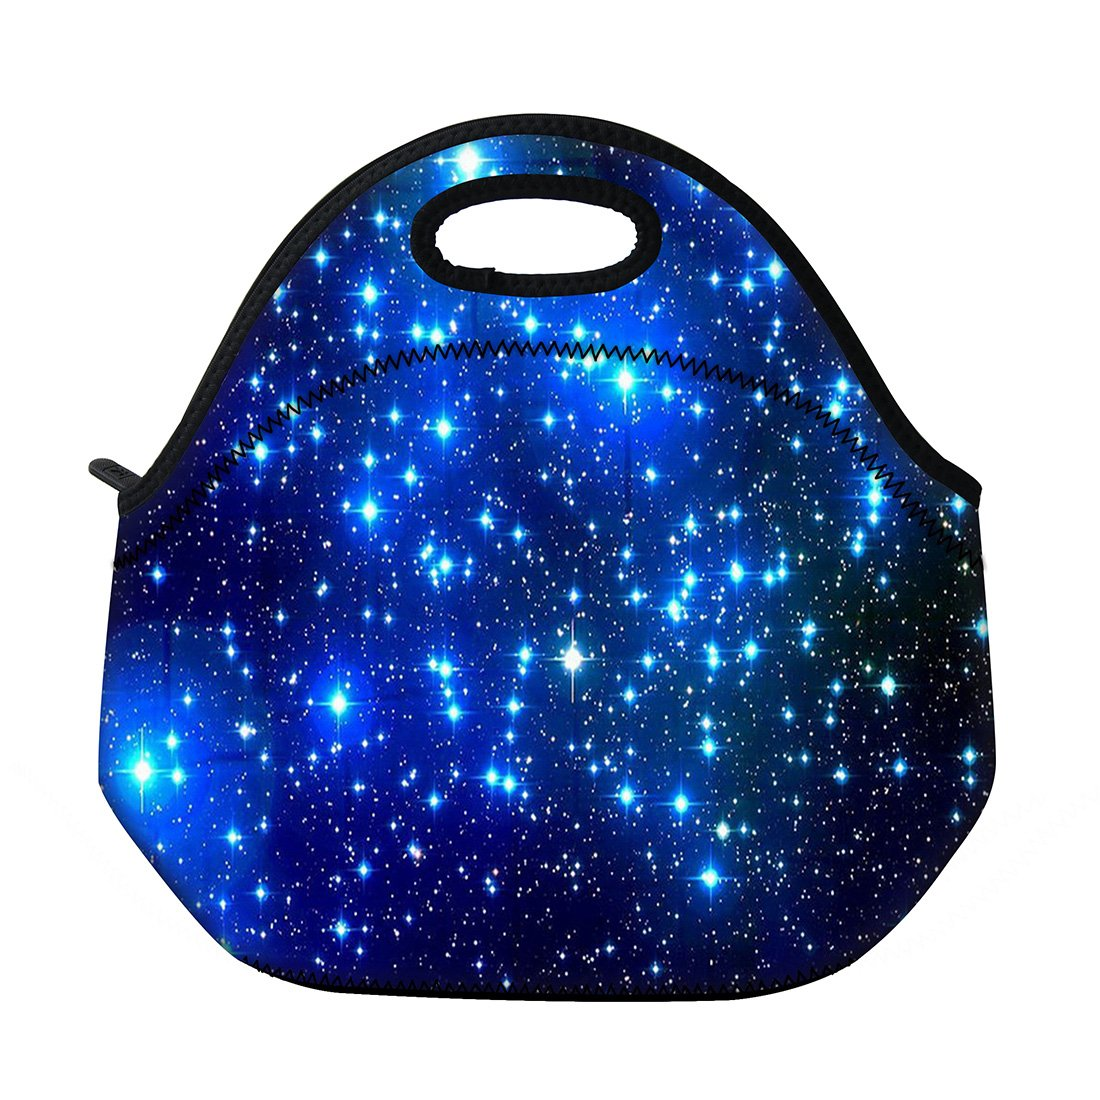 Lunch Bags Tote Insulated Neoprene School Gifts for Kids Lunch Box for Women mens Travel Camping Storage Containers Bags Starry Night Mydours